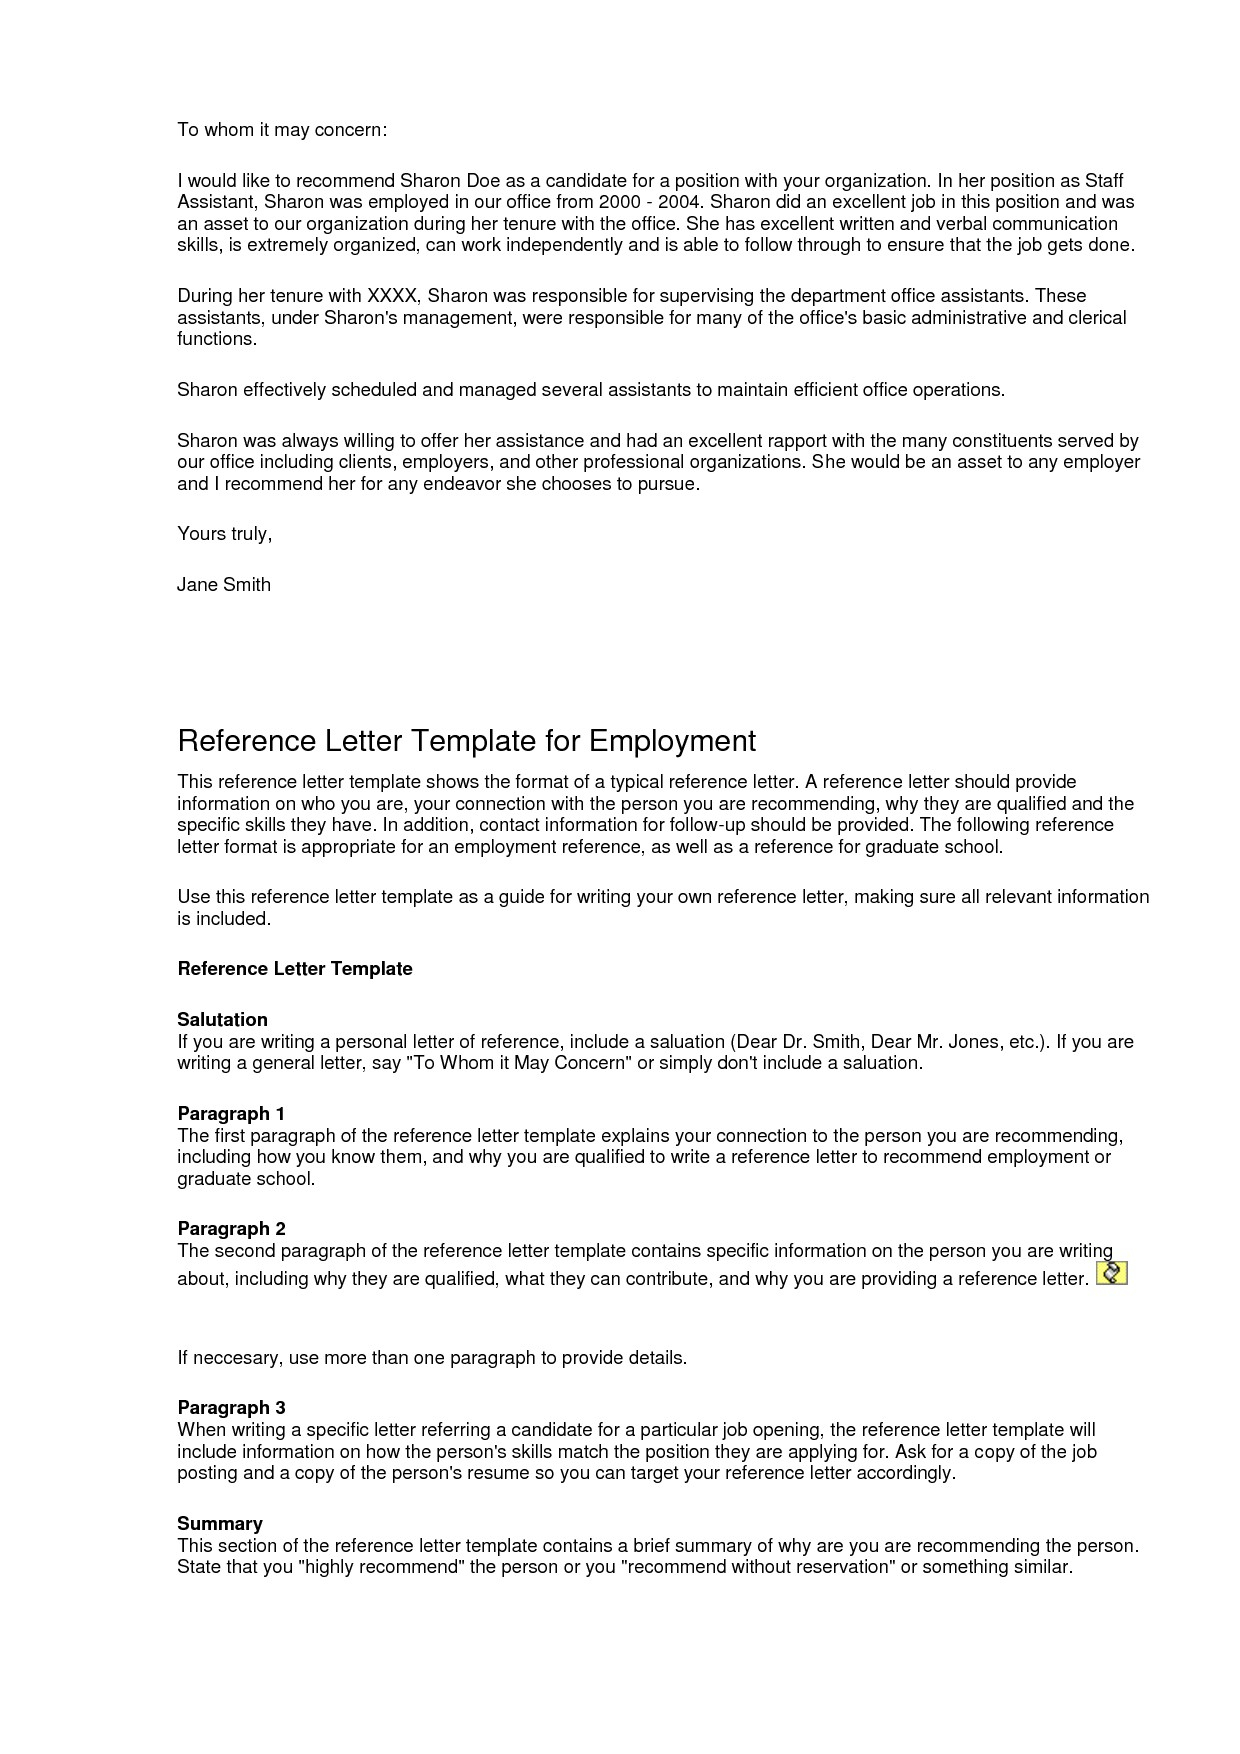 School Reference Letter Template - Examples Letters Re Mendation for Job Applicants Valid